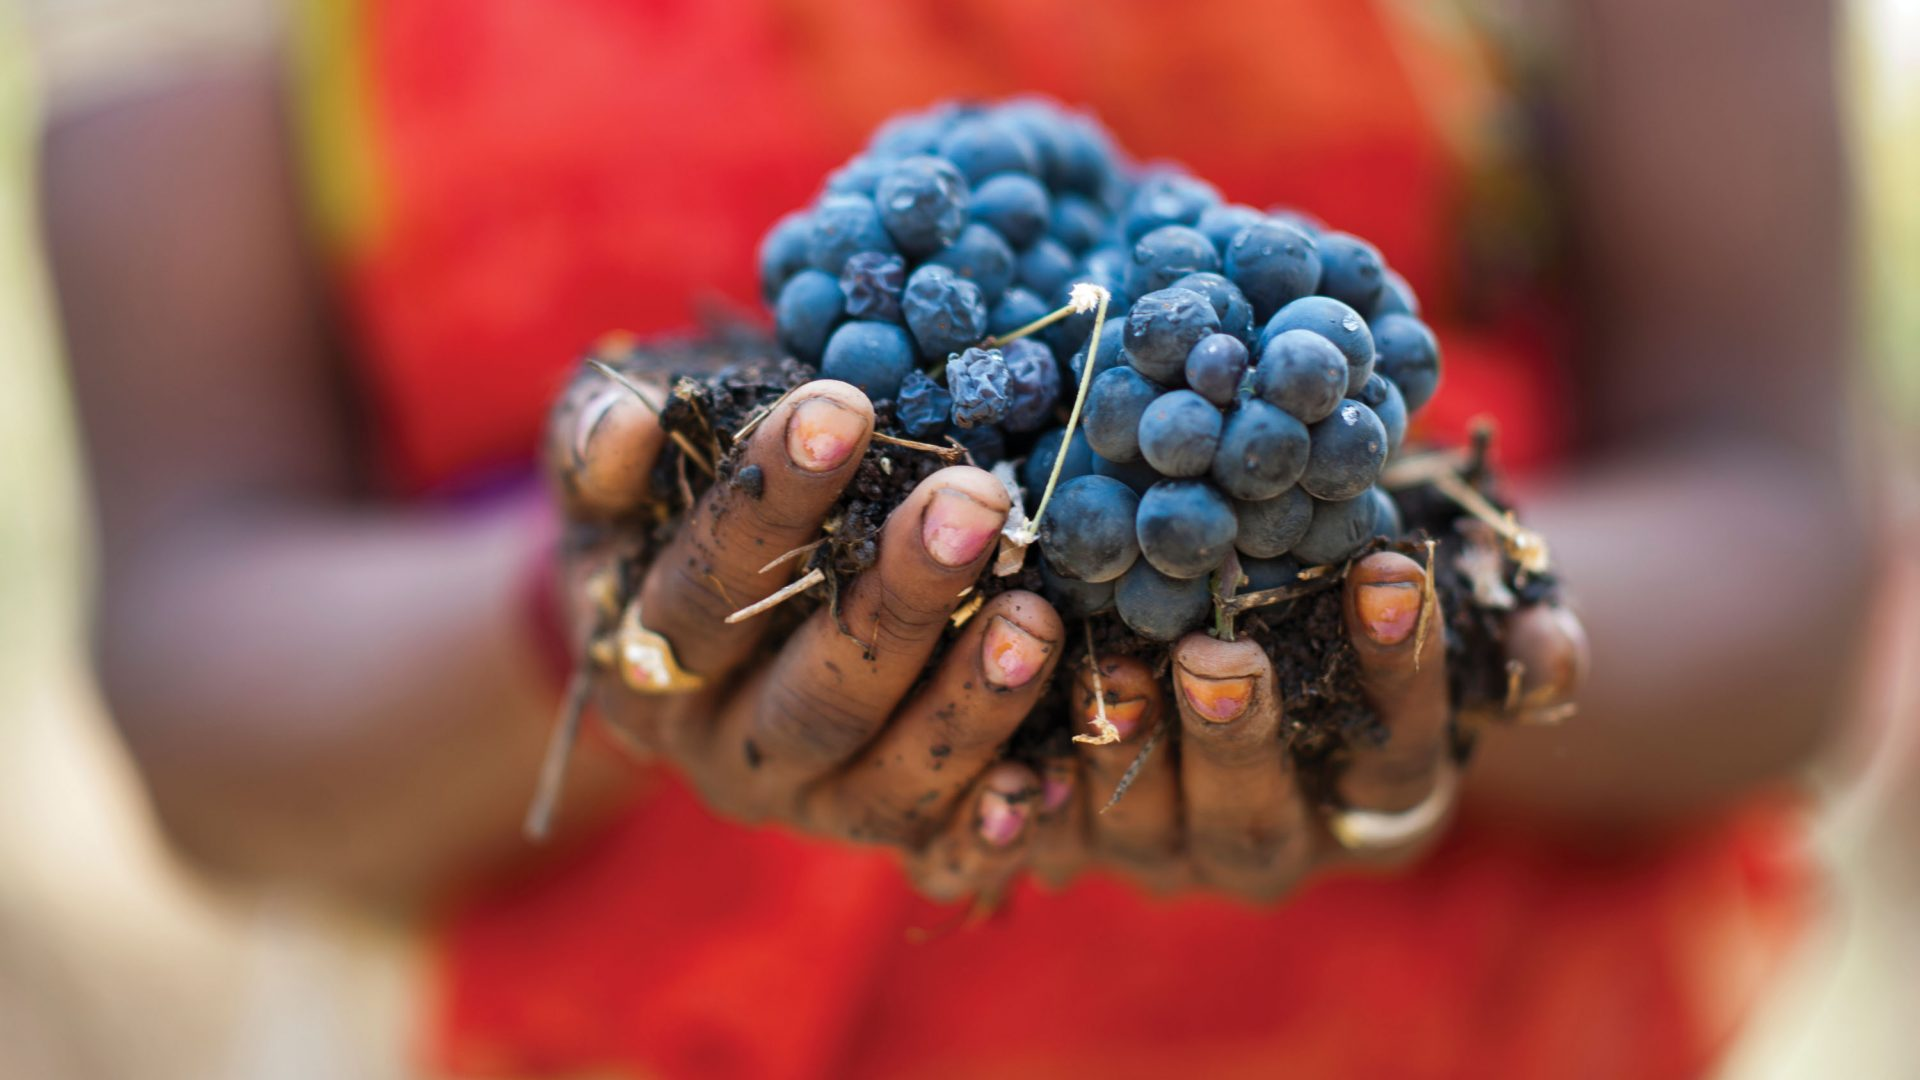 Grape expectations: Inside India's blossoming wine region